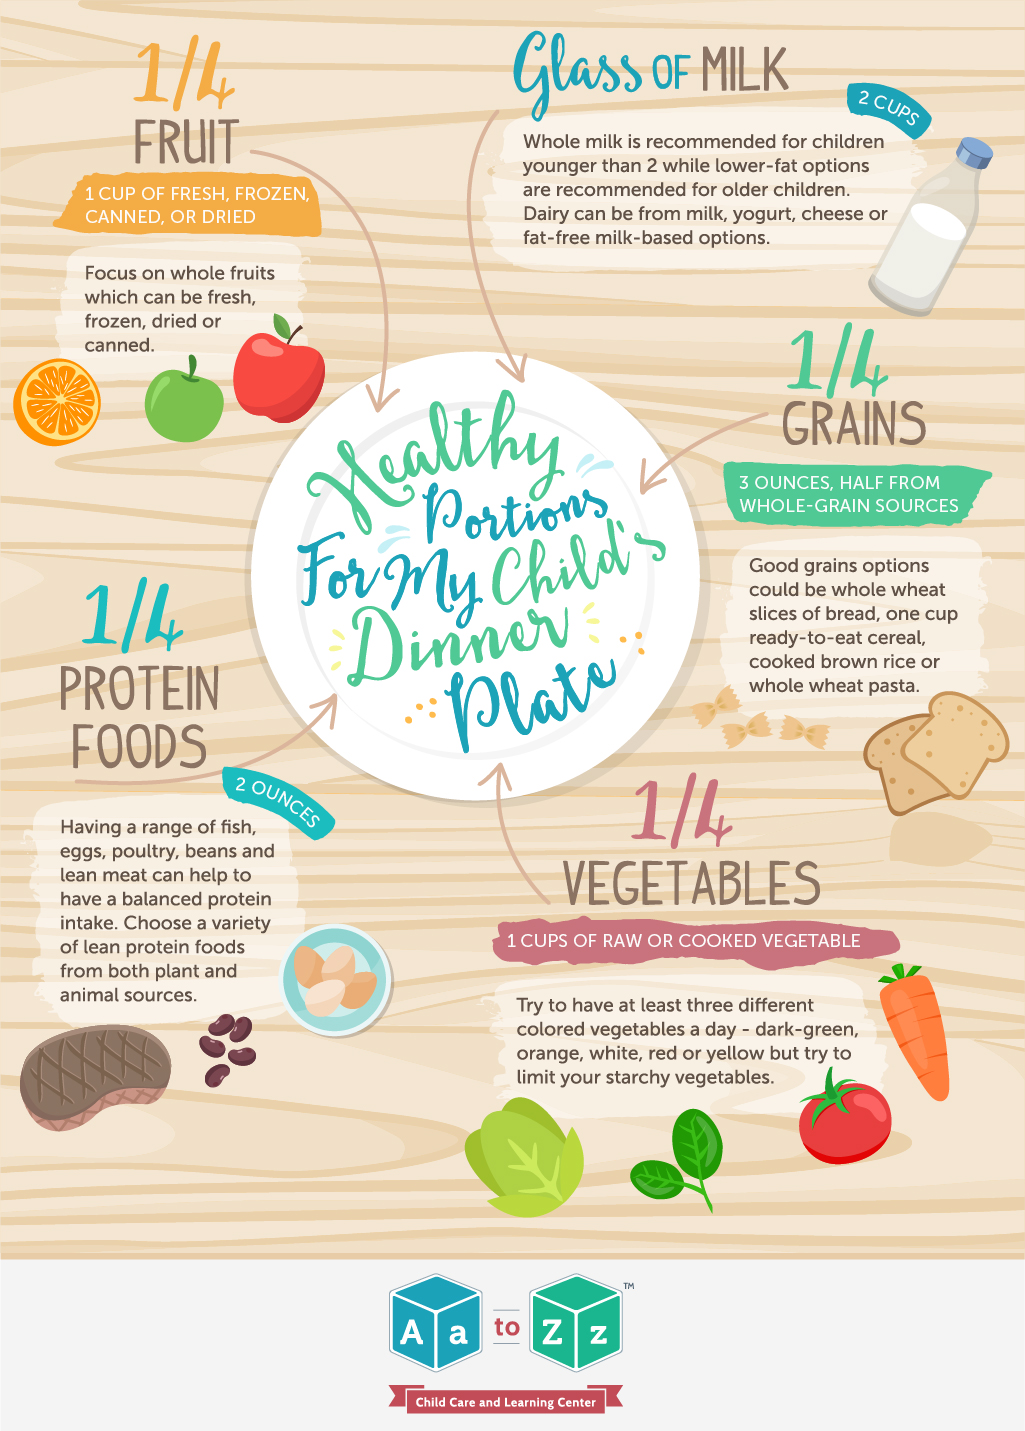 Healthy-Portions-For-My Childs-Dinner-Plate-01  sc 1 st  Aa to Zz Child Care & Healthy-Portions-For-My Childs-Dinner-Plate-01 - Aa to Zz